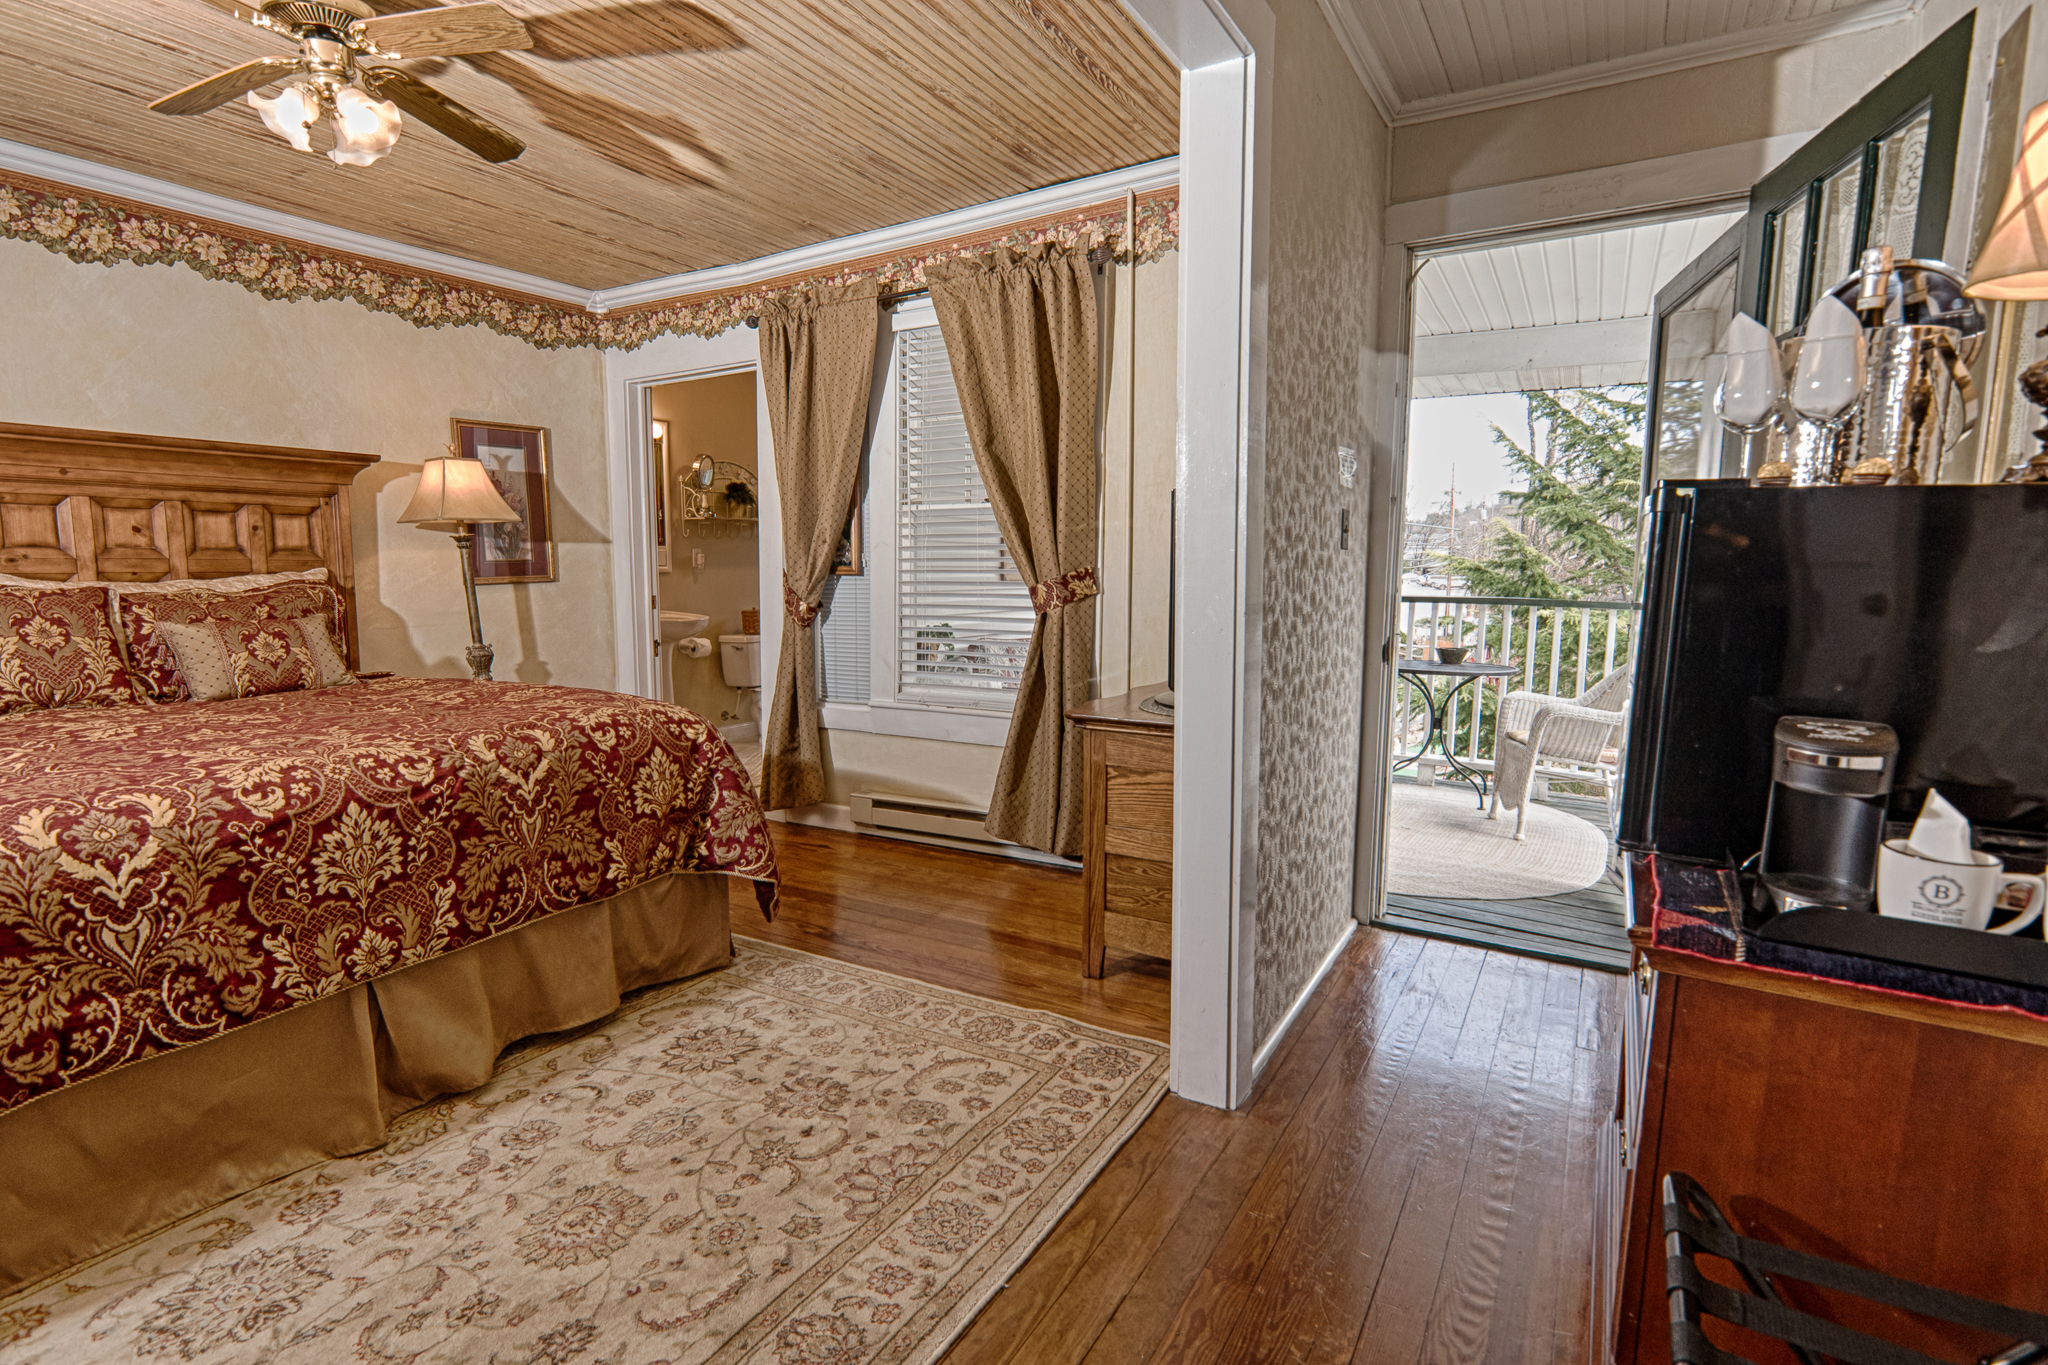 Image for 01 King Jacuzzi Room #1 w/private porch